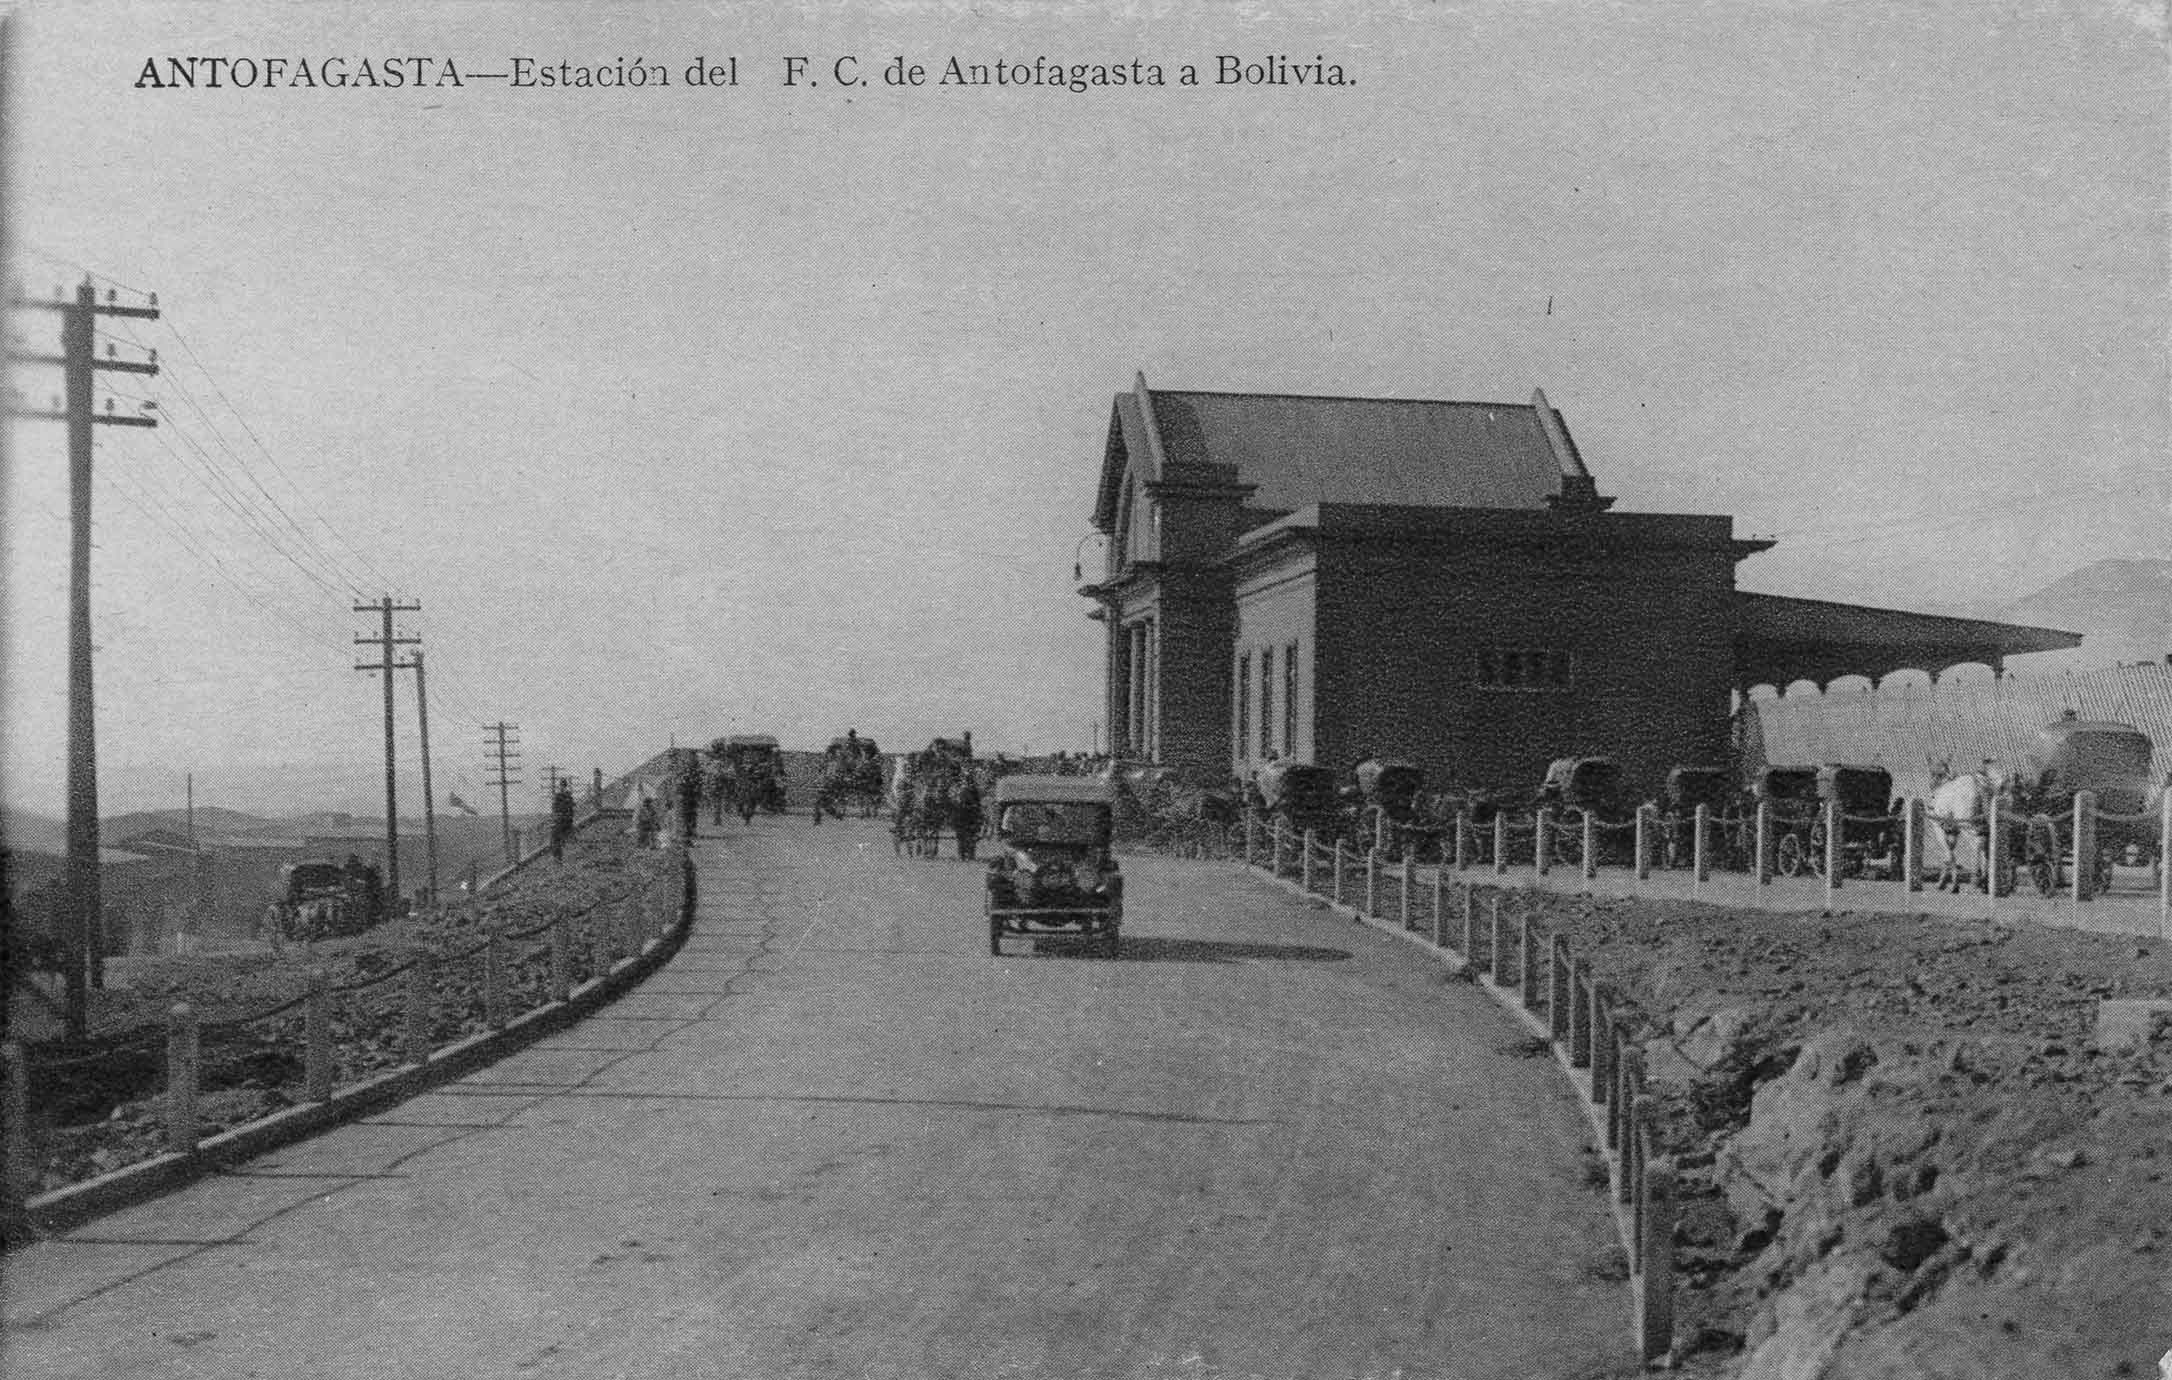 Enterreno - Fotos históricas de chile - fotos antiguas de Chile - Estación de Ferrocarriles de Antofagasta, ca. 1920